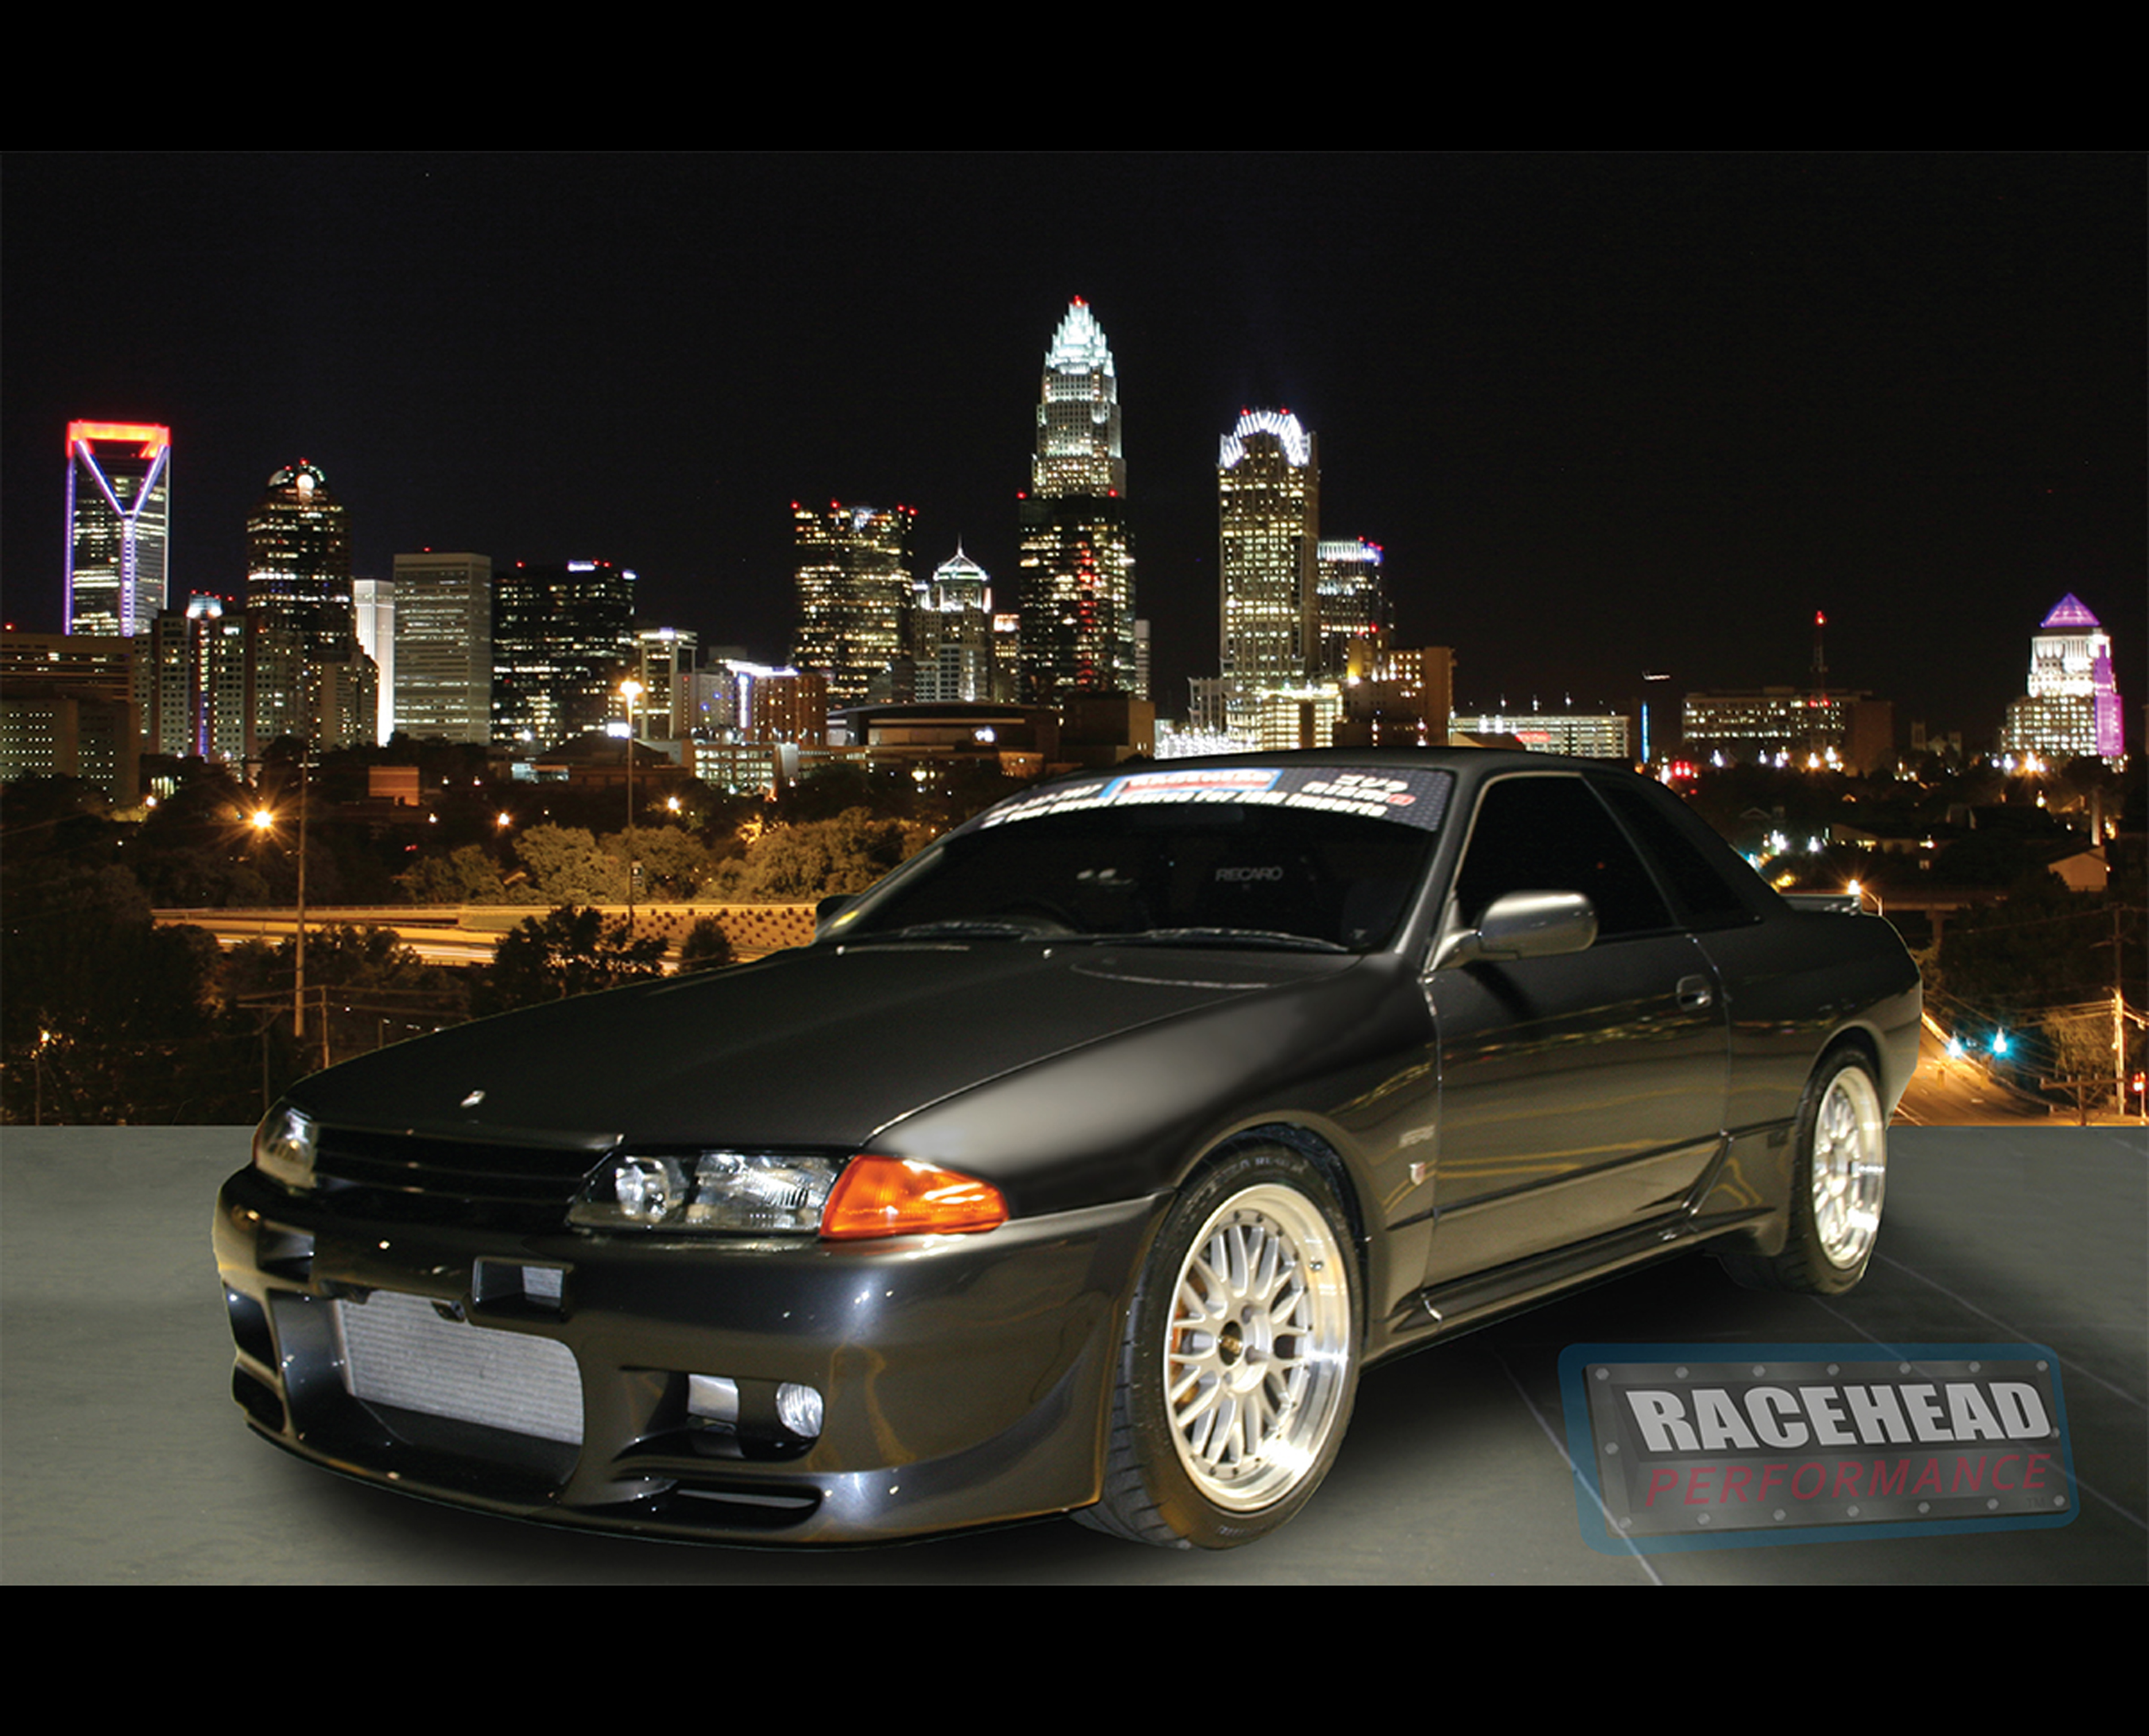 1990 Nissan Skyline GT-R Hasegawa Power Service Edition – Available